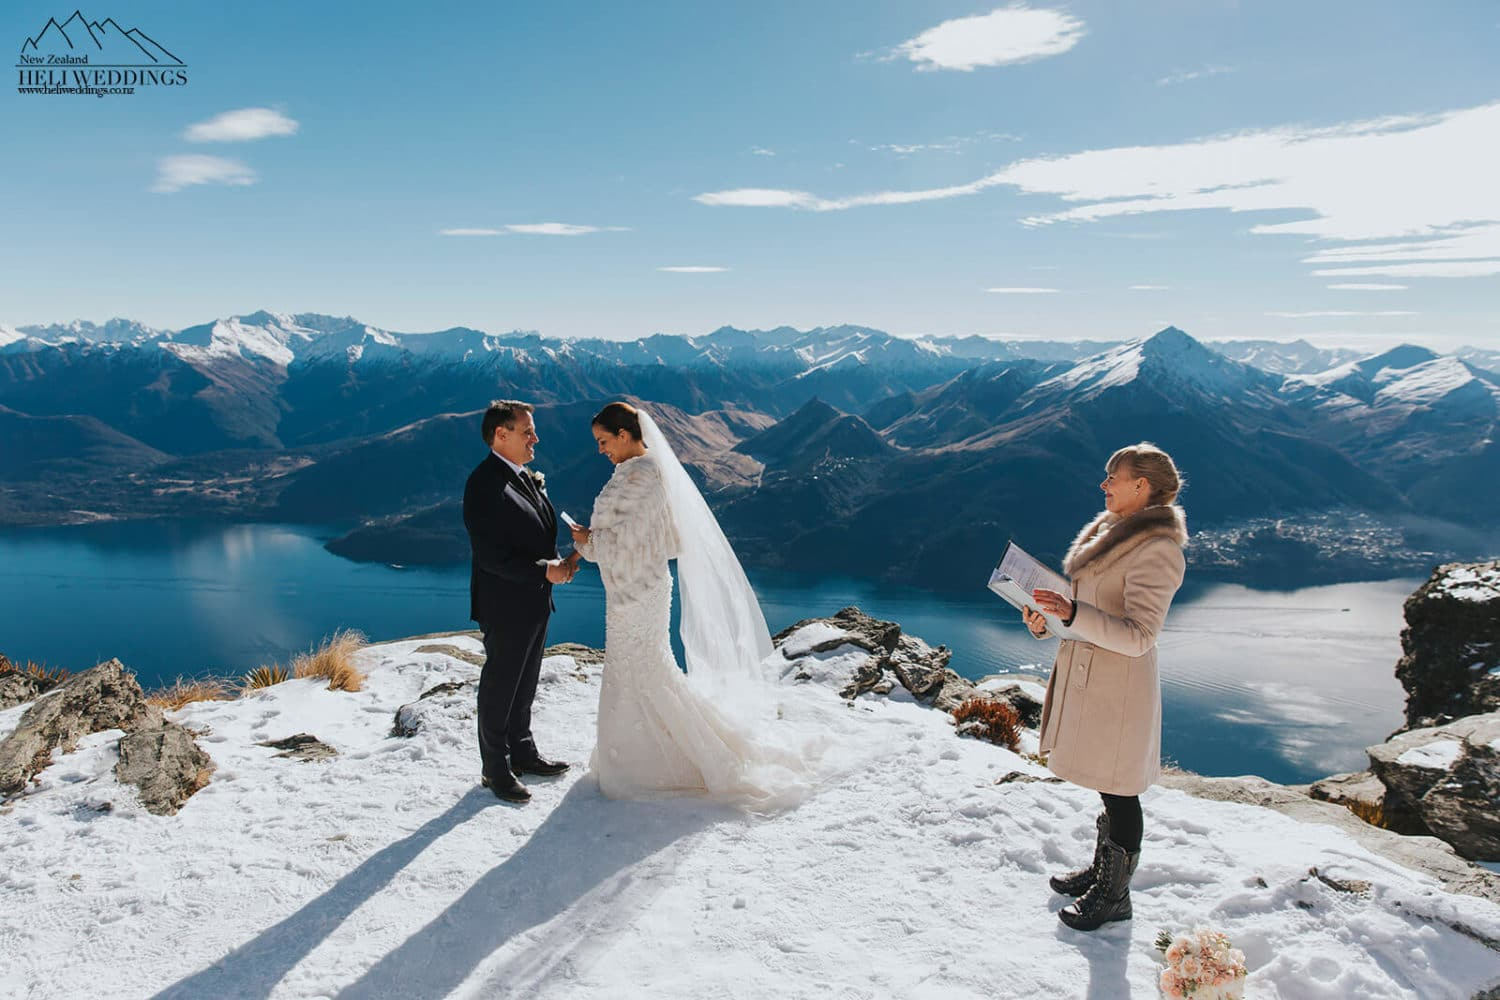 Winter wedding ceremony in the snow